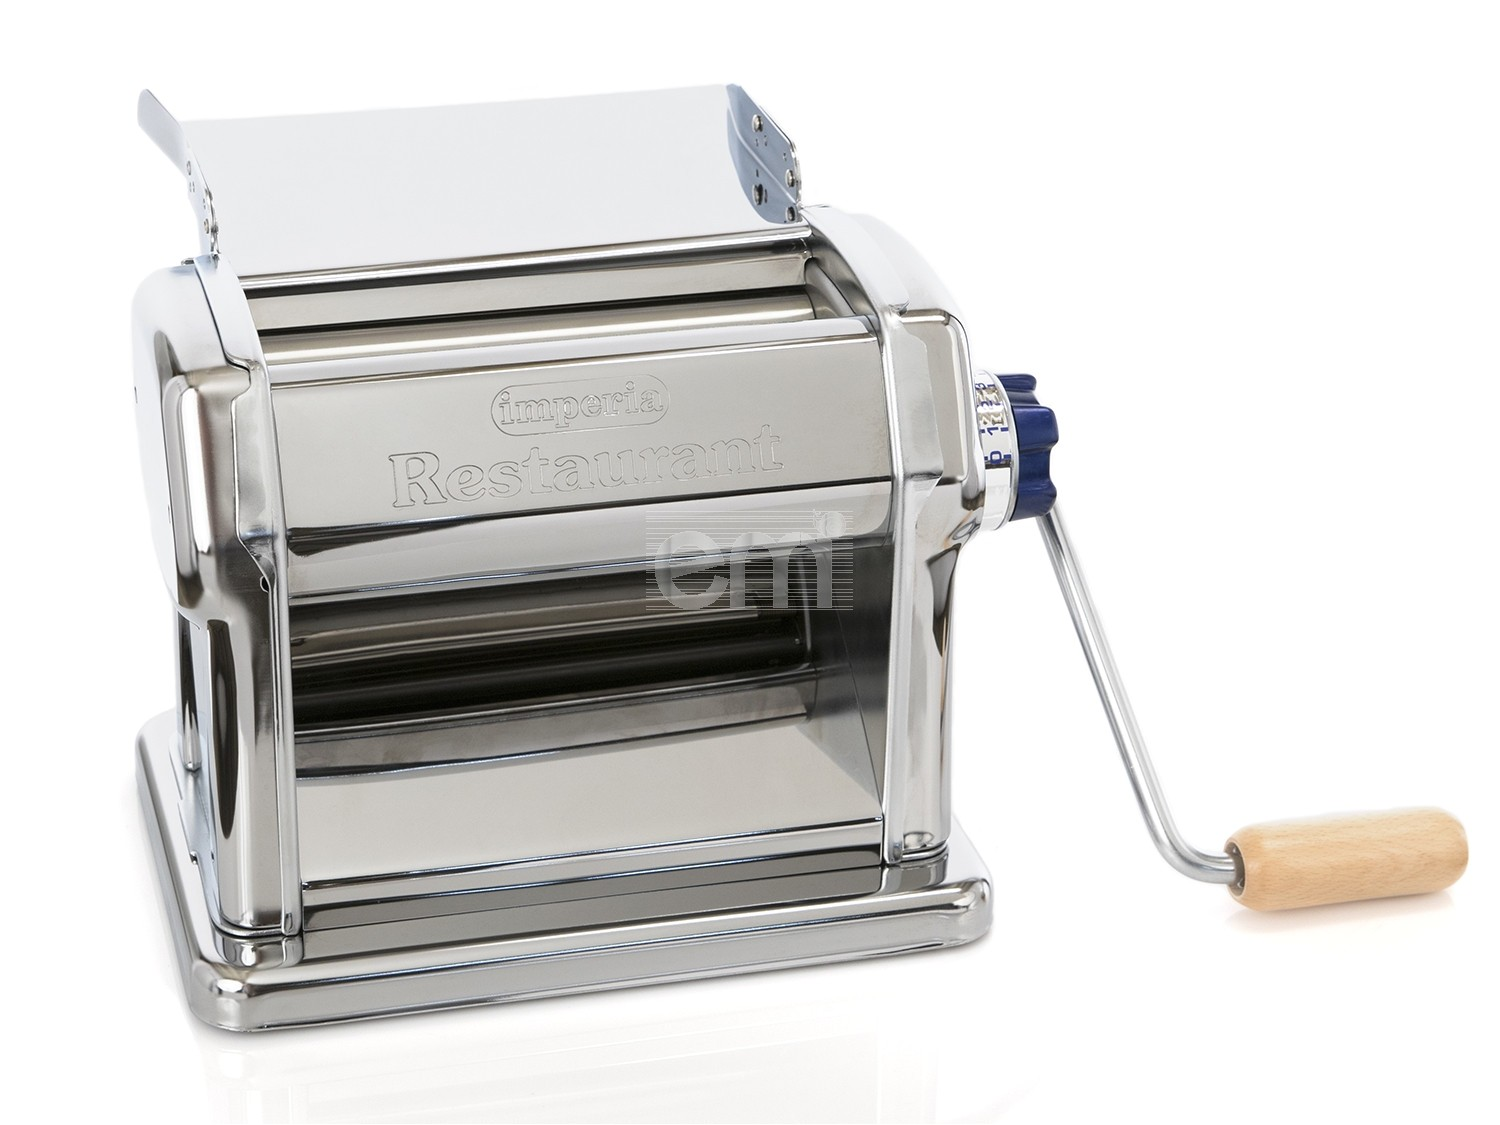 imperia electric pasta machine manual